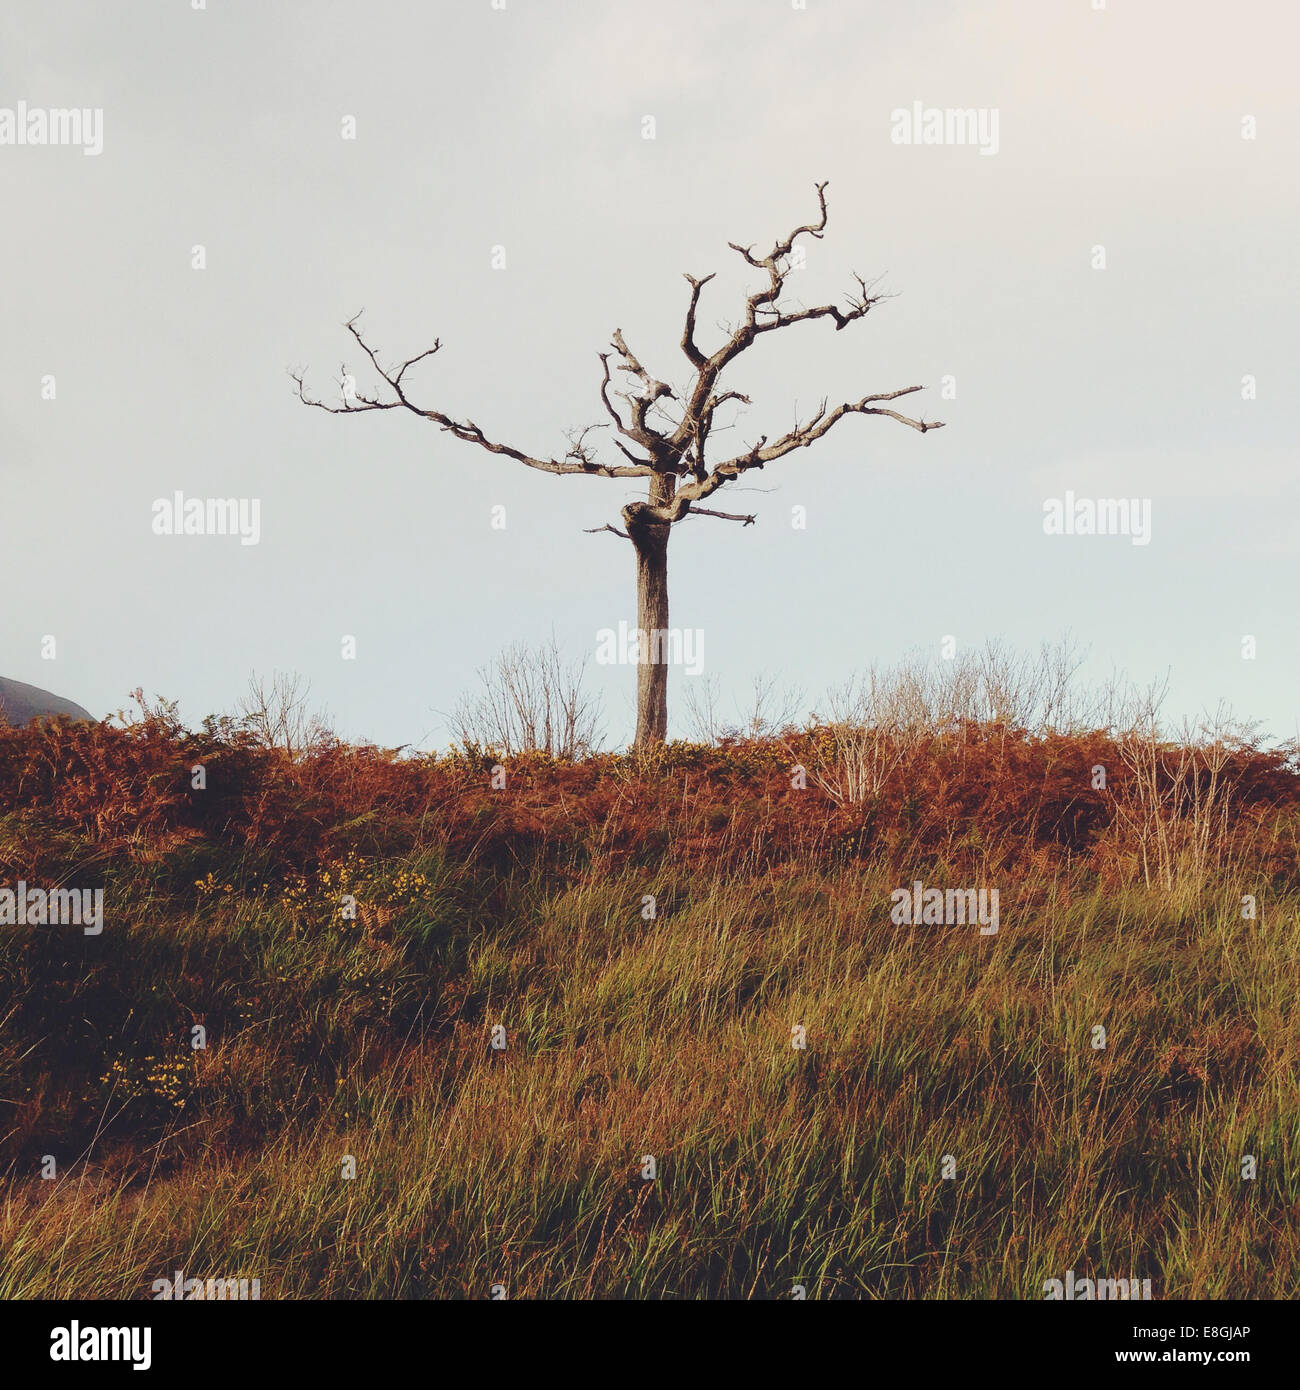 Lone tree in Kerry mountains, County Kerry, Ireland - Stock Image